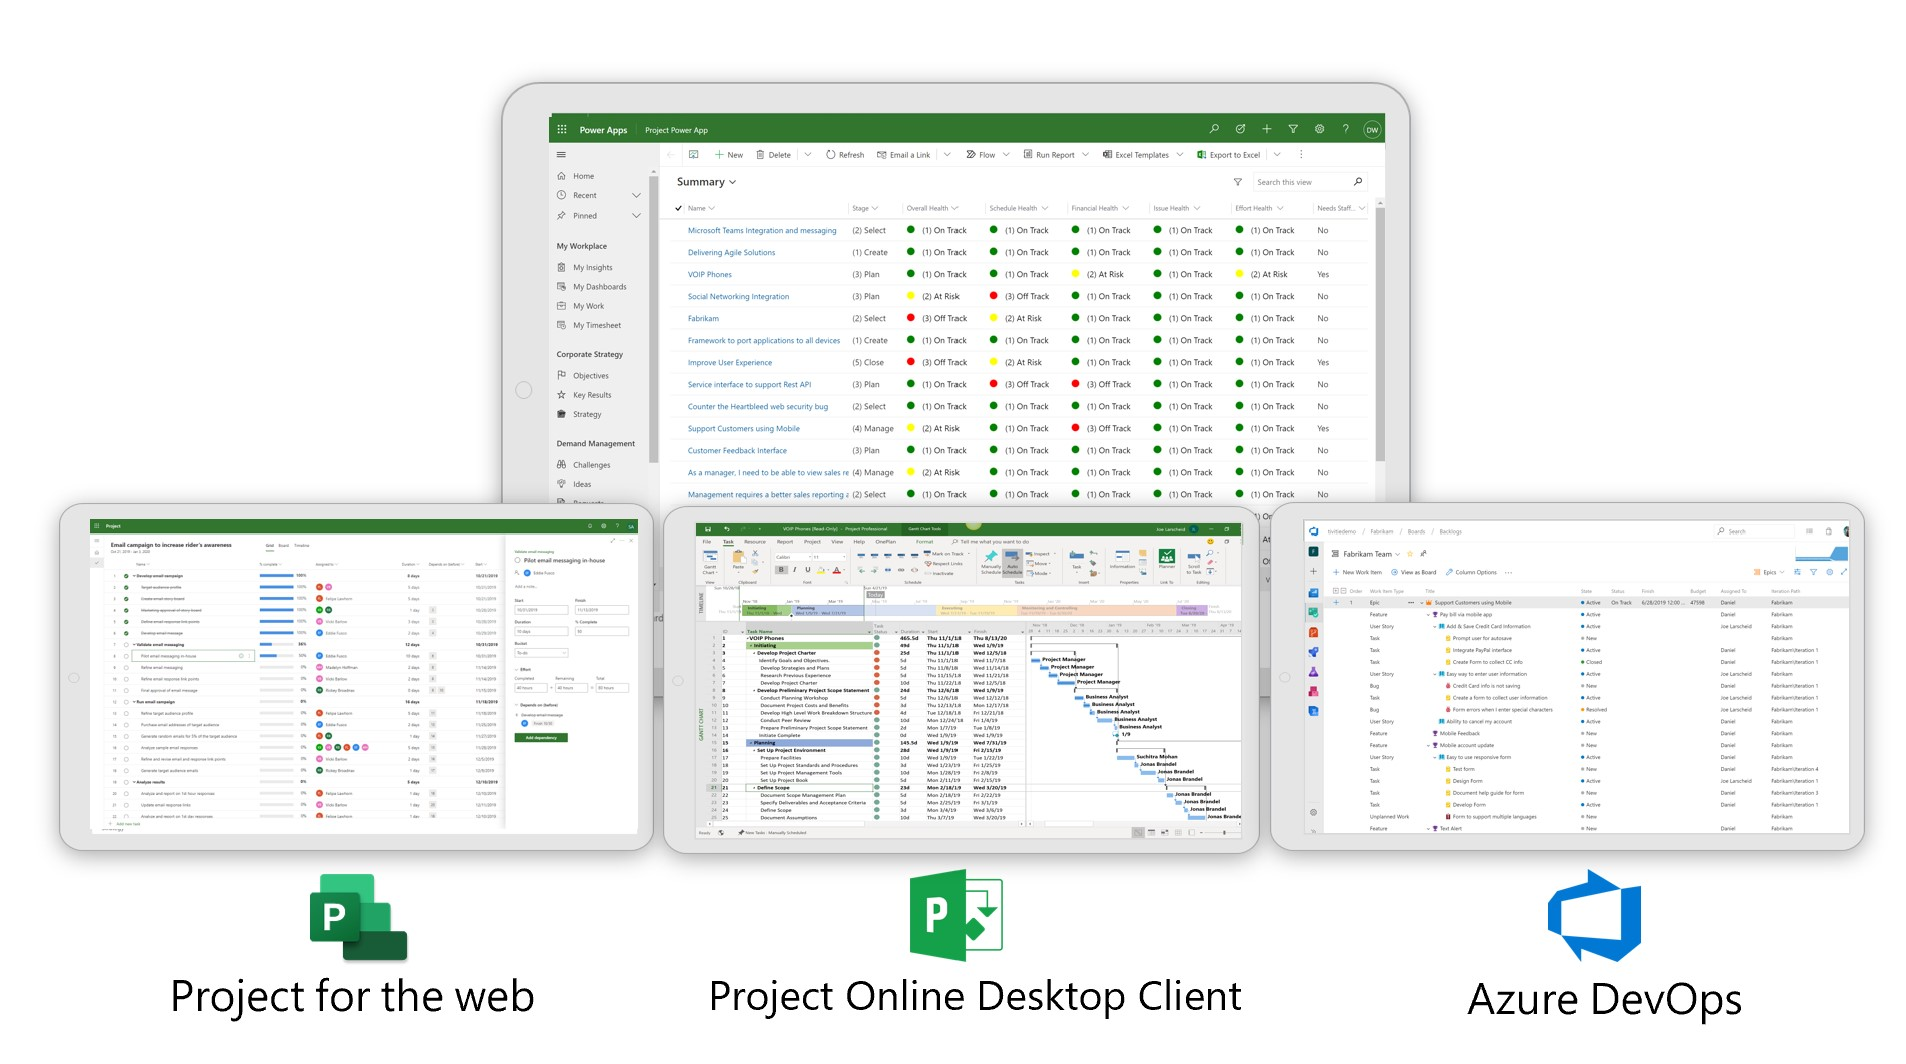 How OnePlan is aligning with Microsoft's Project and Portfolio Management Vision